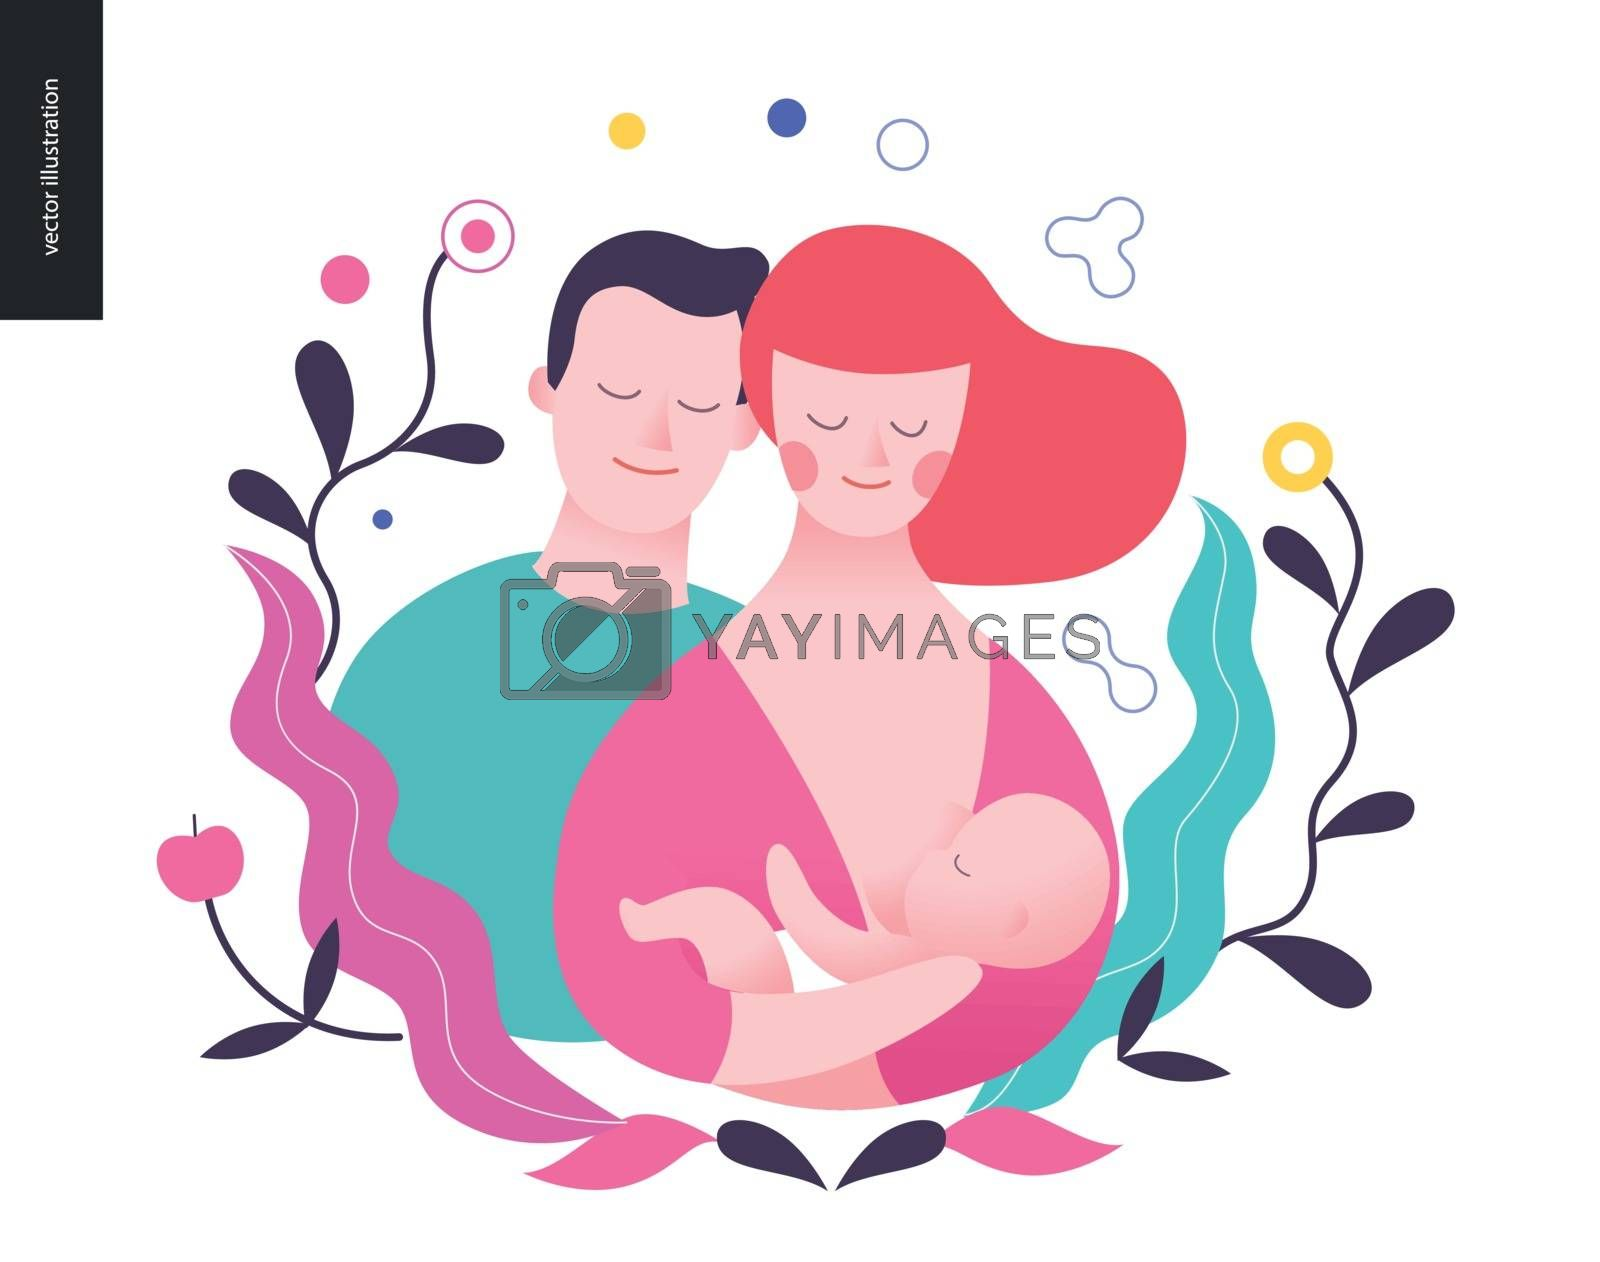 Reproduction - a breast feeding woman, baby and a man surrounded by plants